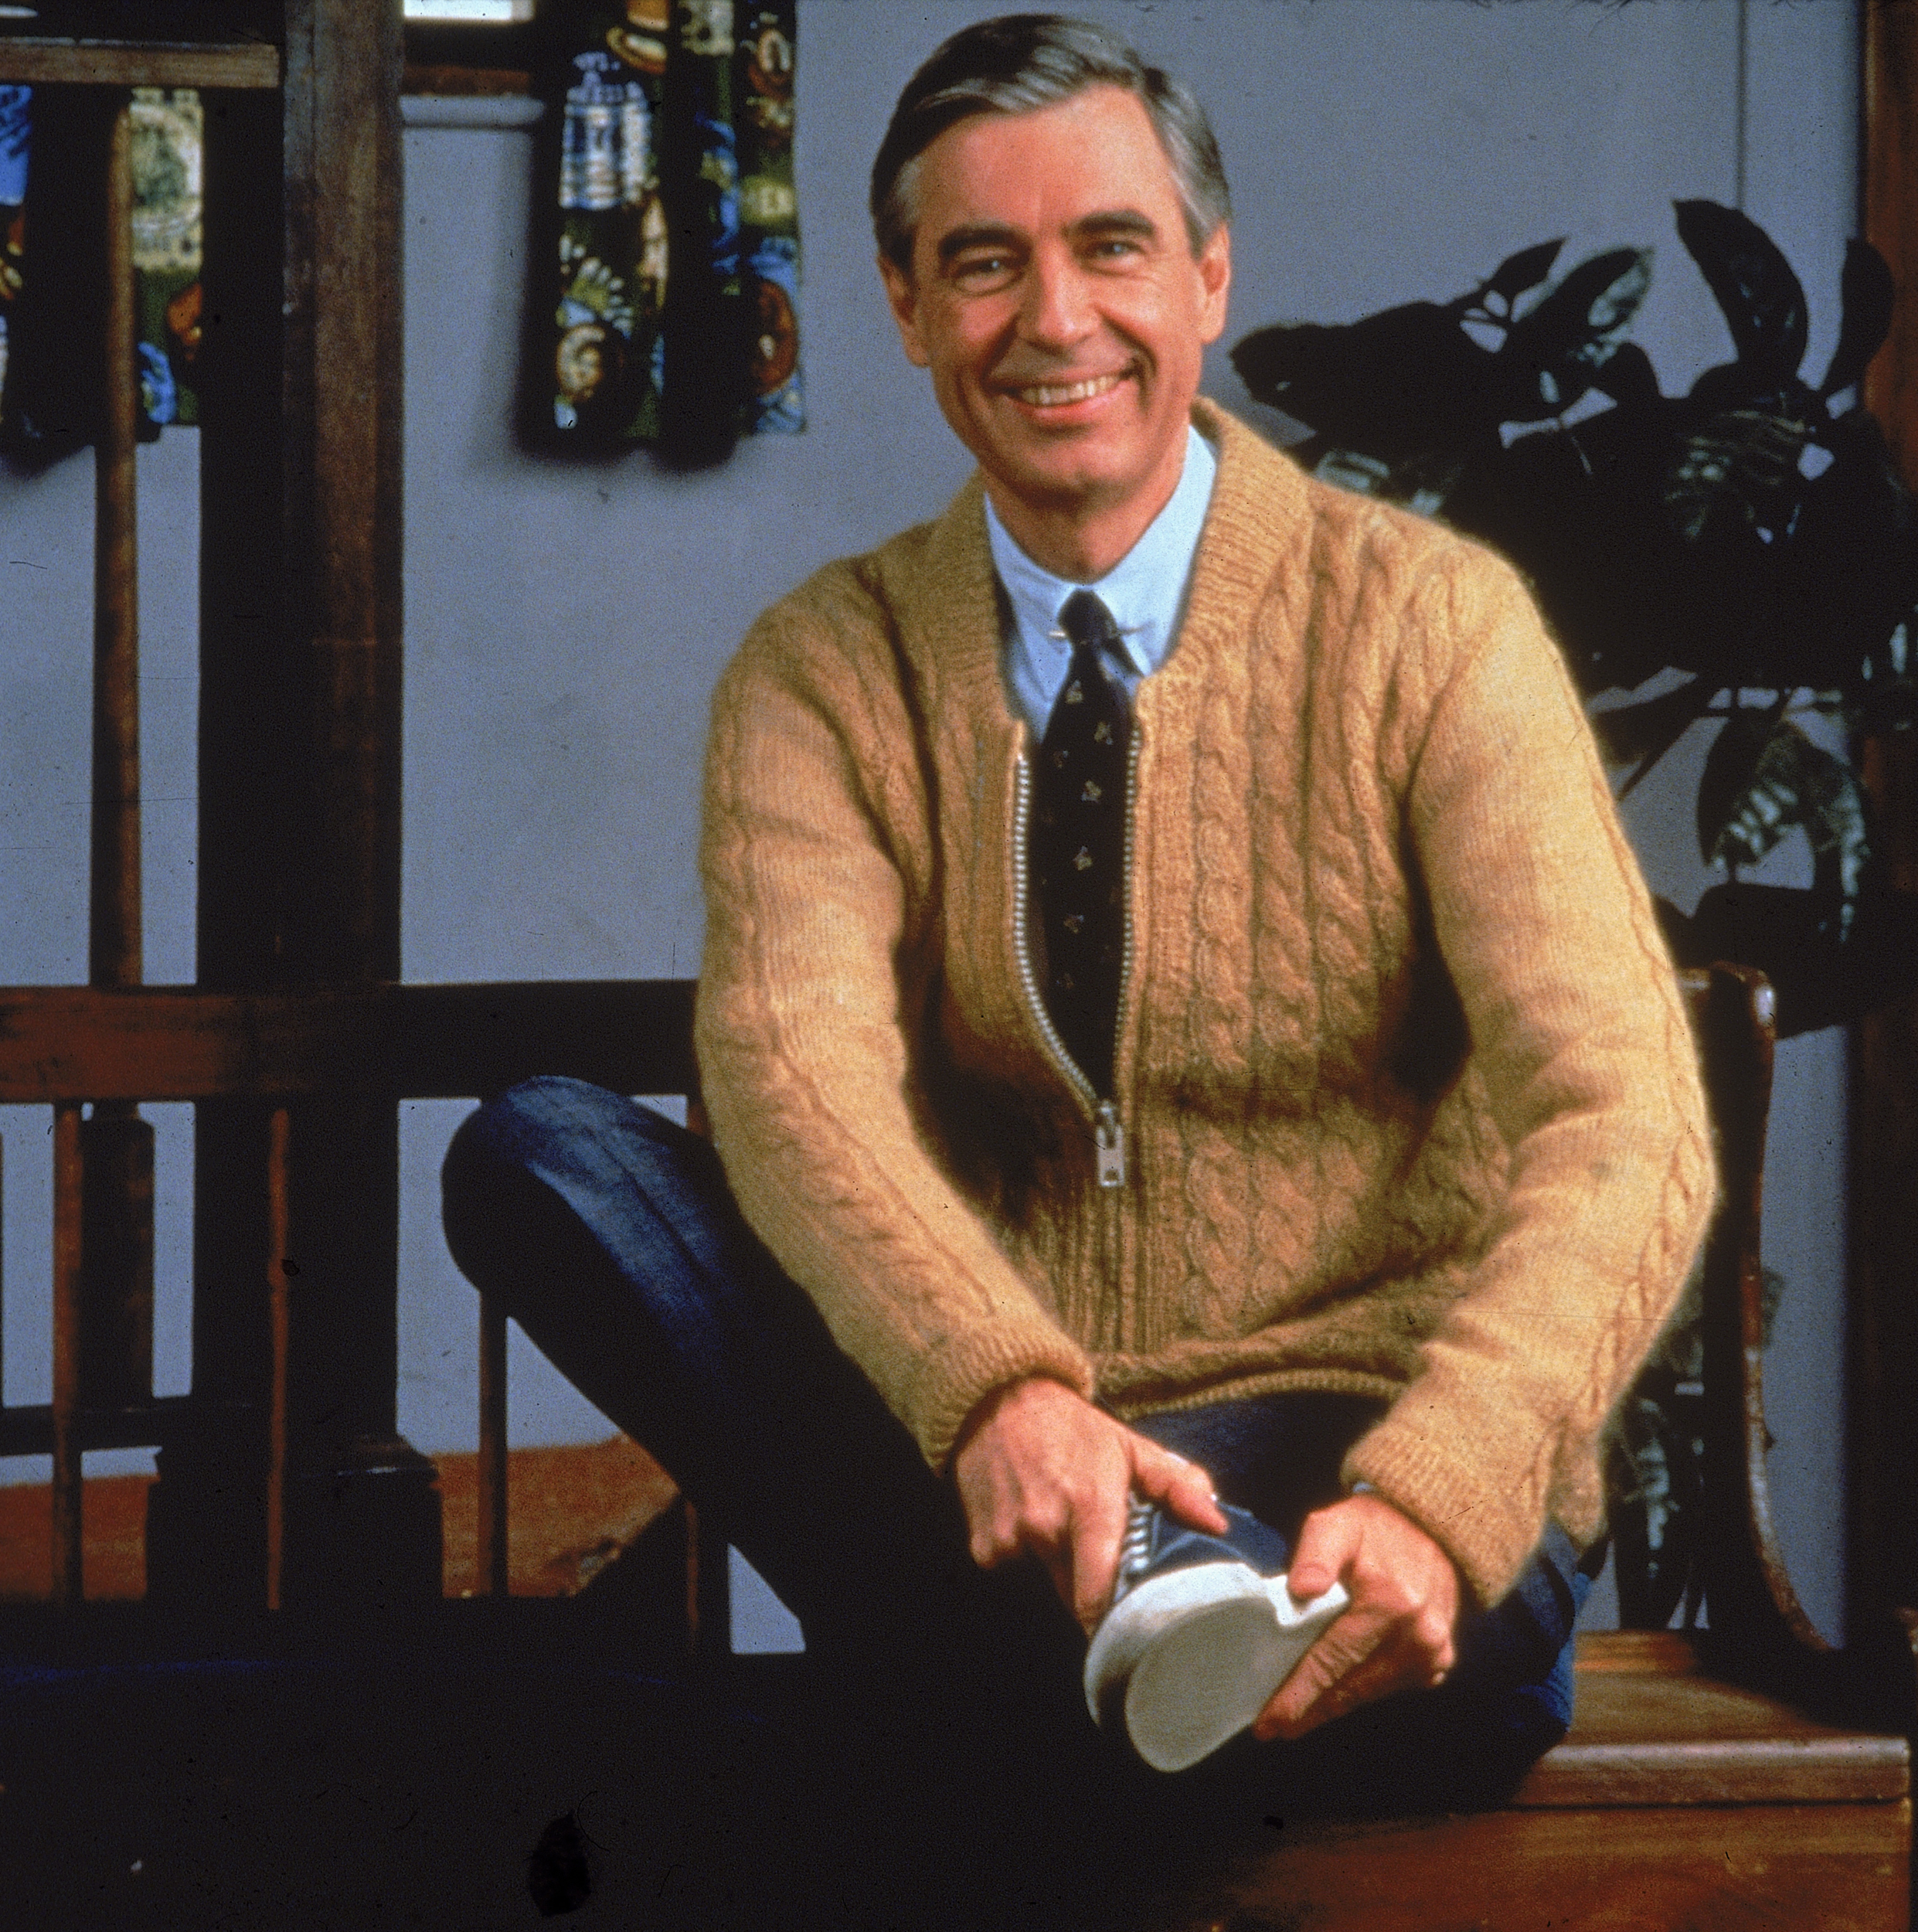 Won T You Be My Neighbor Remembering Mr Rogers The Man Who Helped Me Survive My Childhood